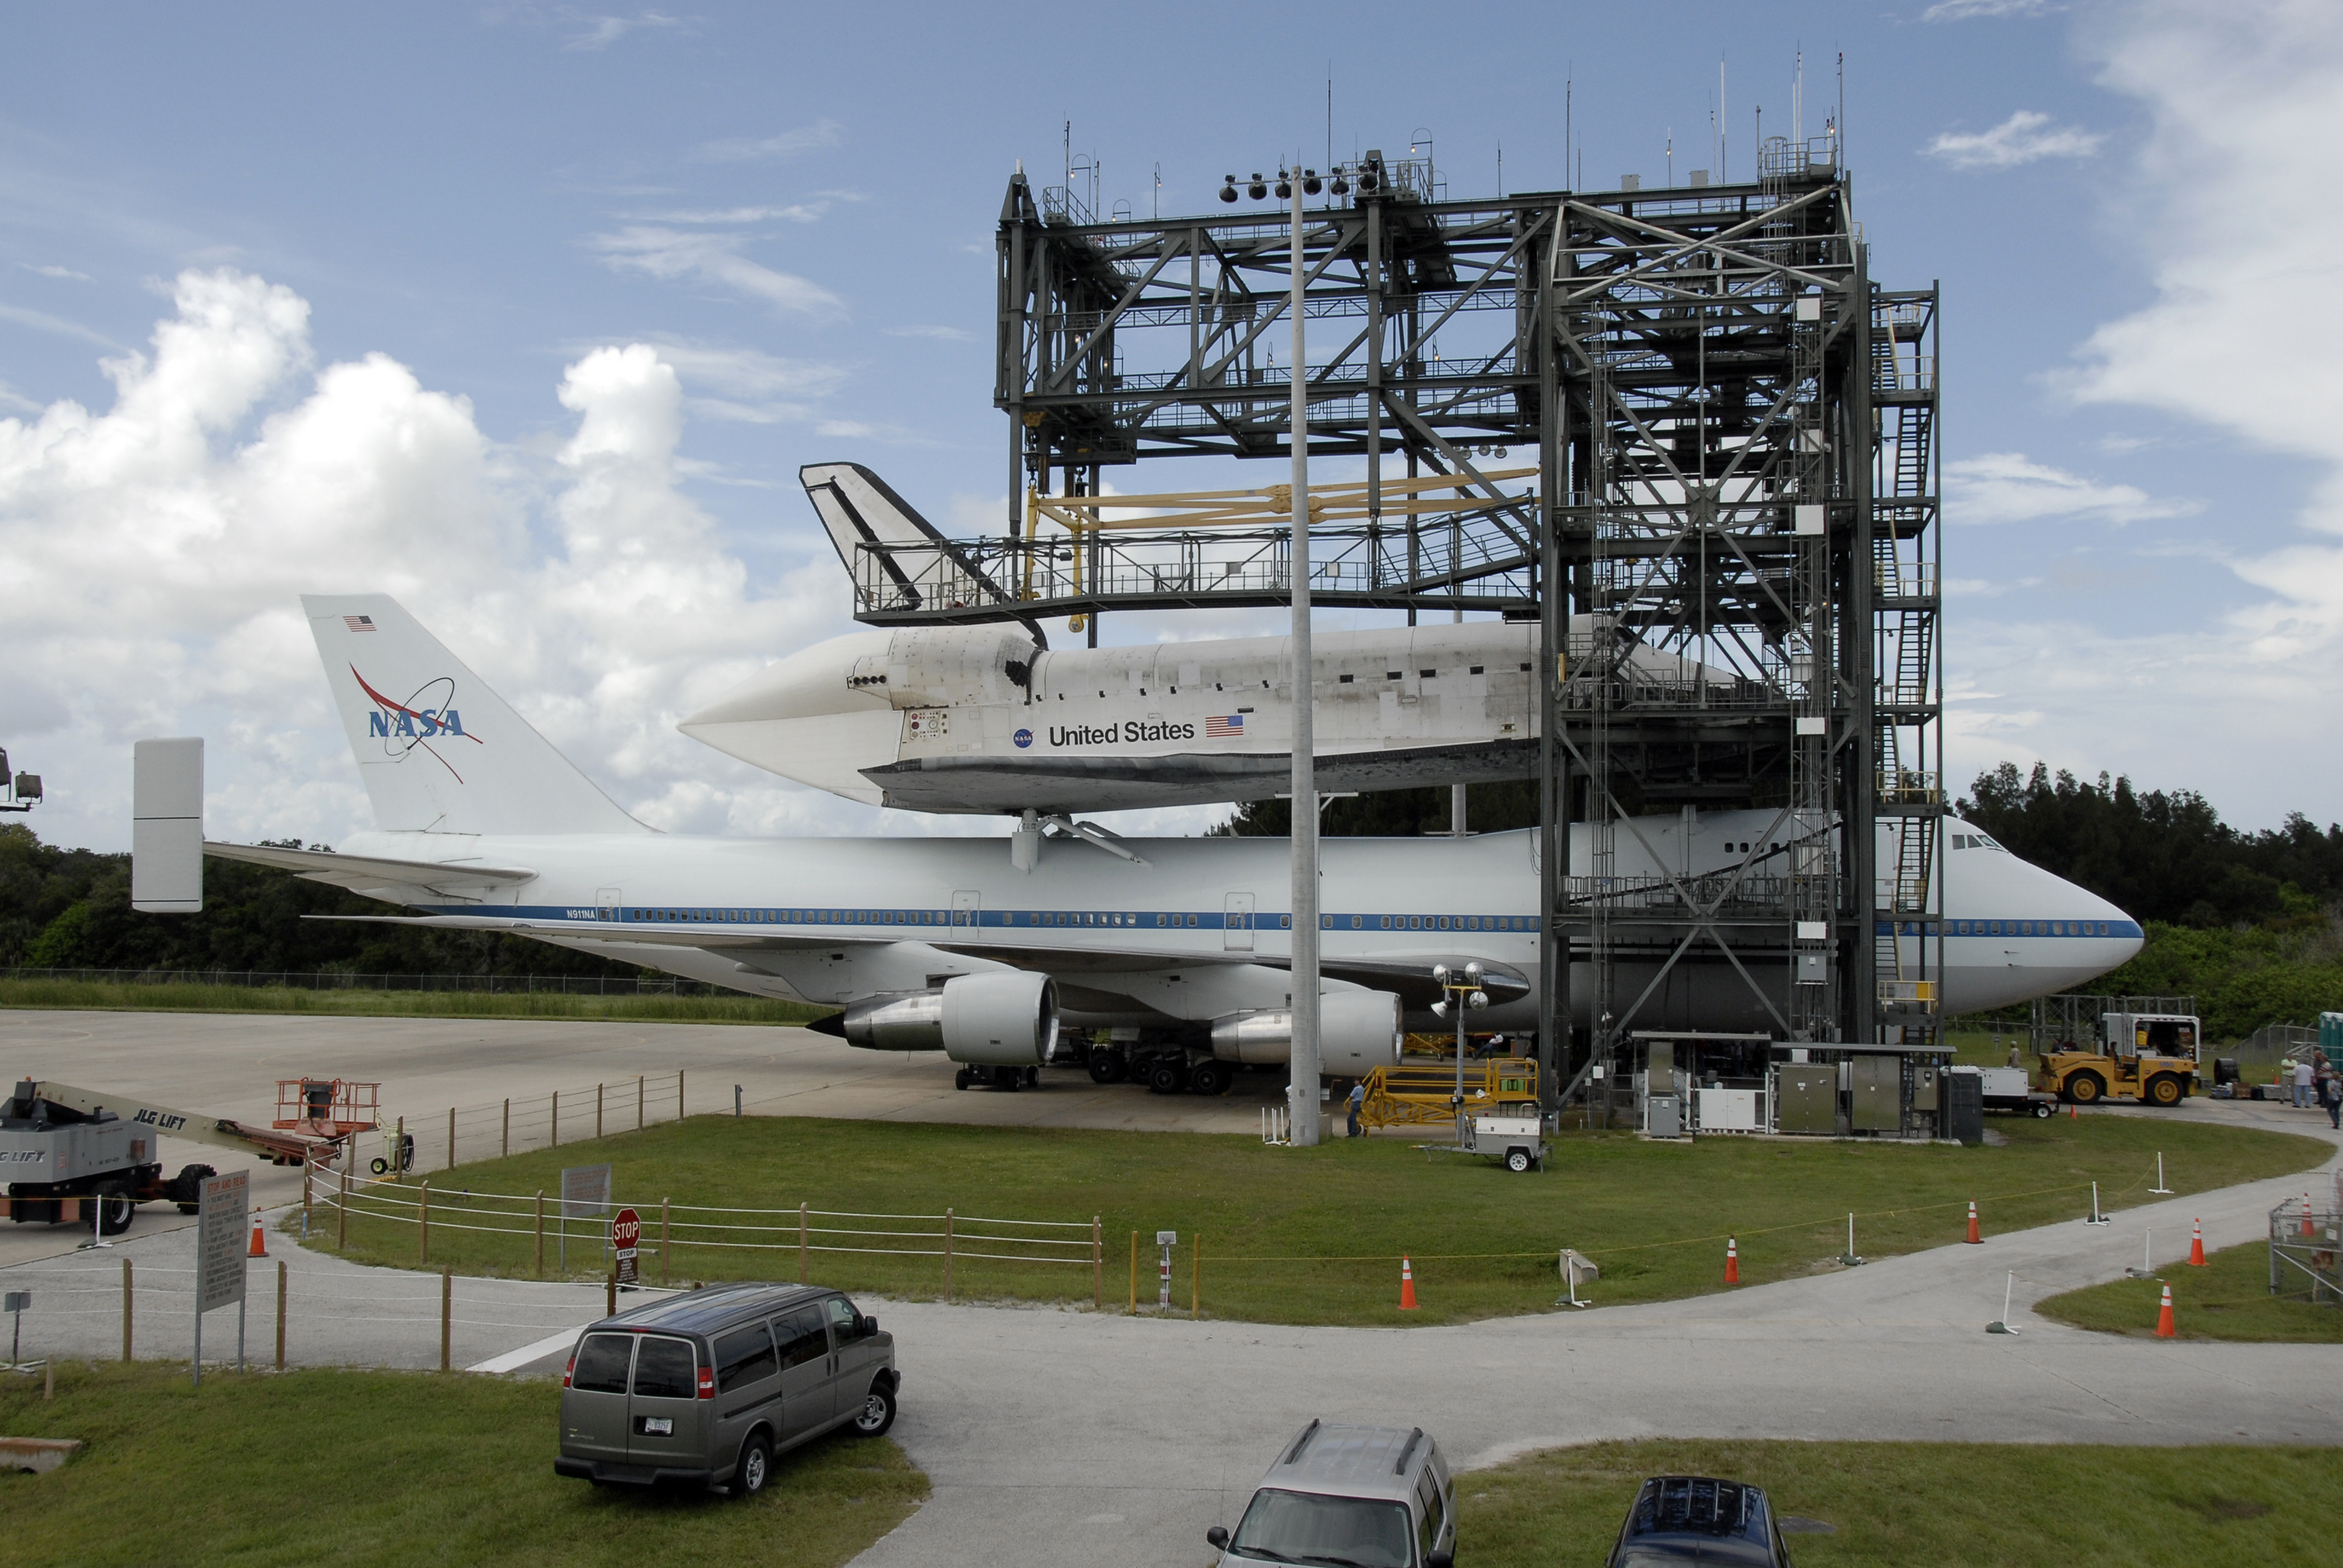 Space shuttle Discovery and 747 in the mate-demate device.